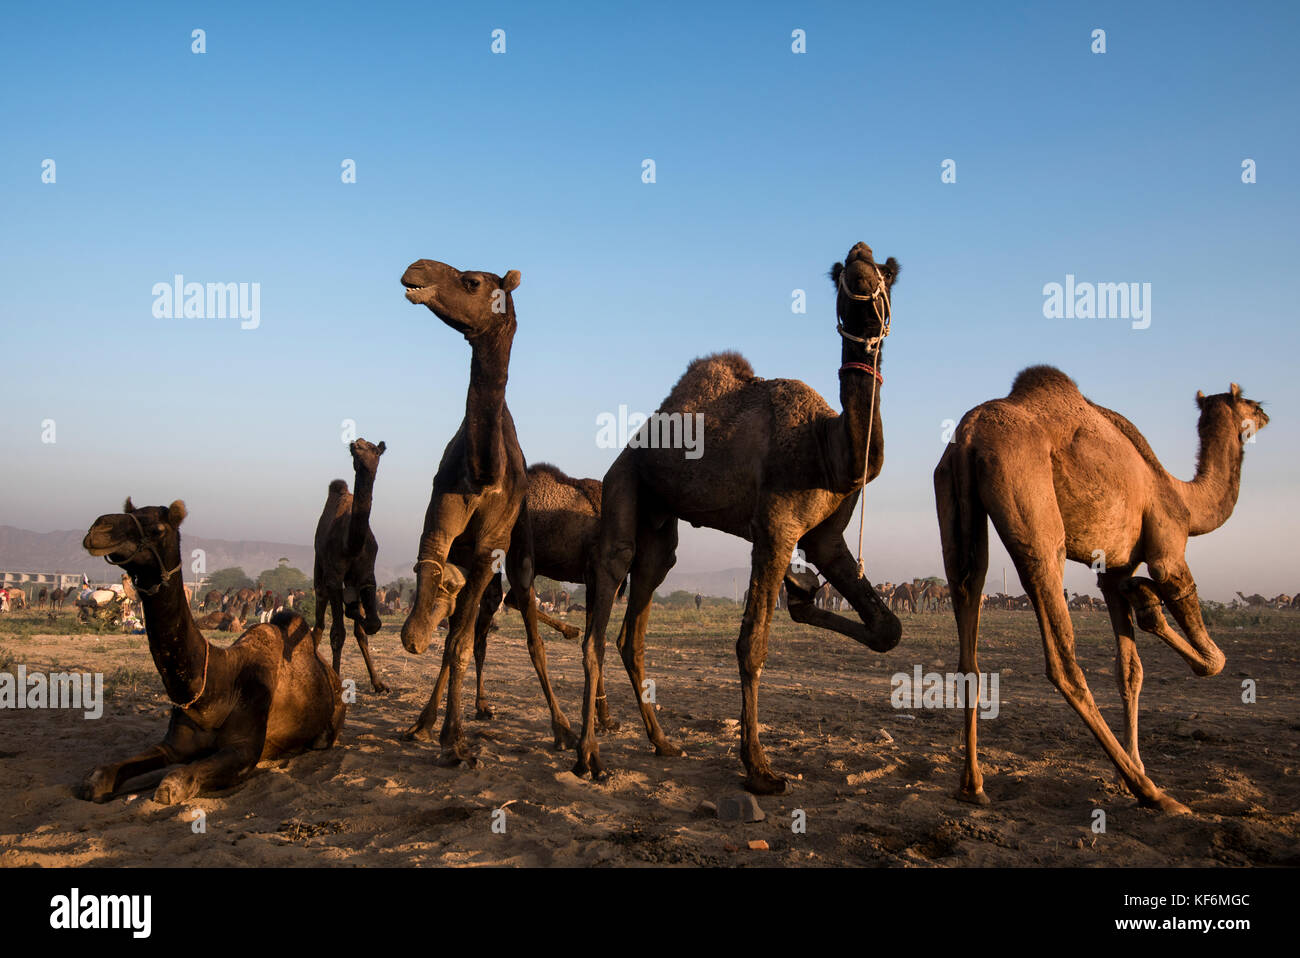 Pushkar, India. 25th Oct, 2017. Camels legs are are tied to keep them in one place. Credit: Ravikanth Kurma/Alamy - Stock Image